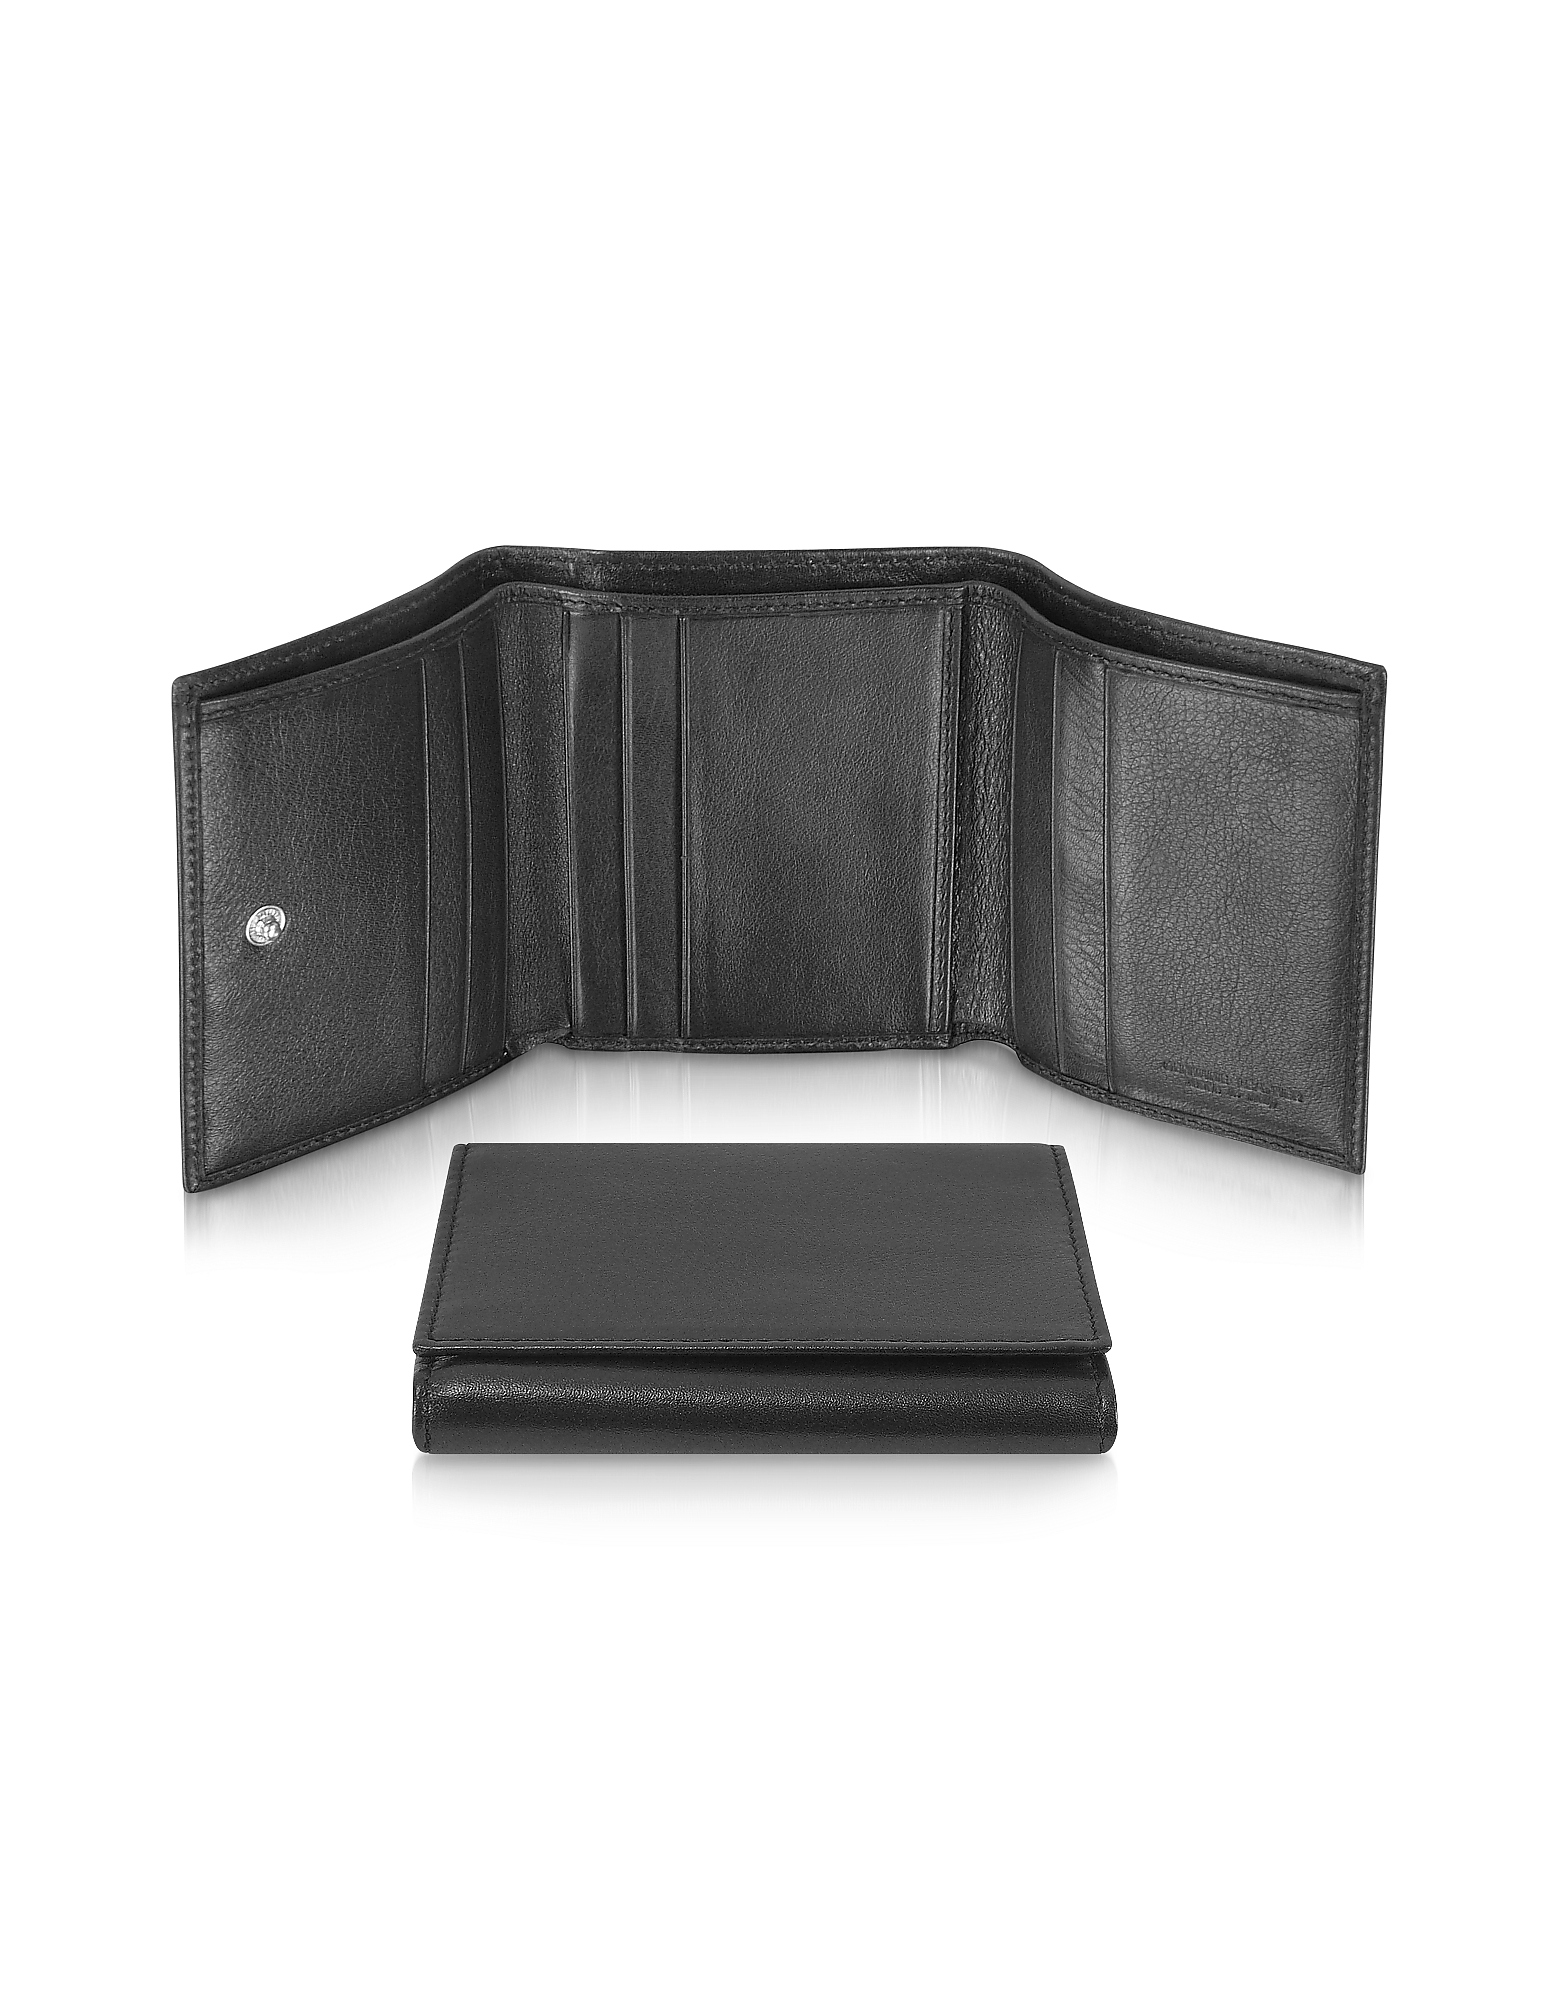 Giorgio Fedon 1919 Wallets, Classica - Women's Black Calfskin Small Trifold Wallet